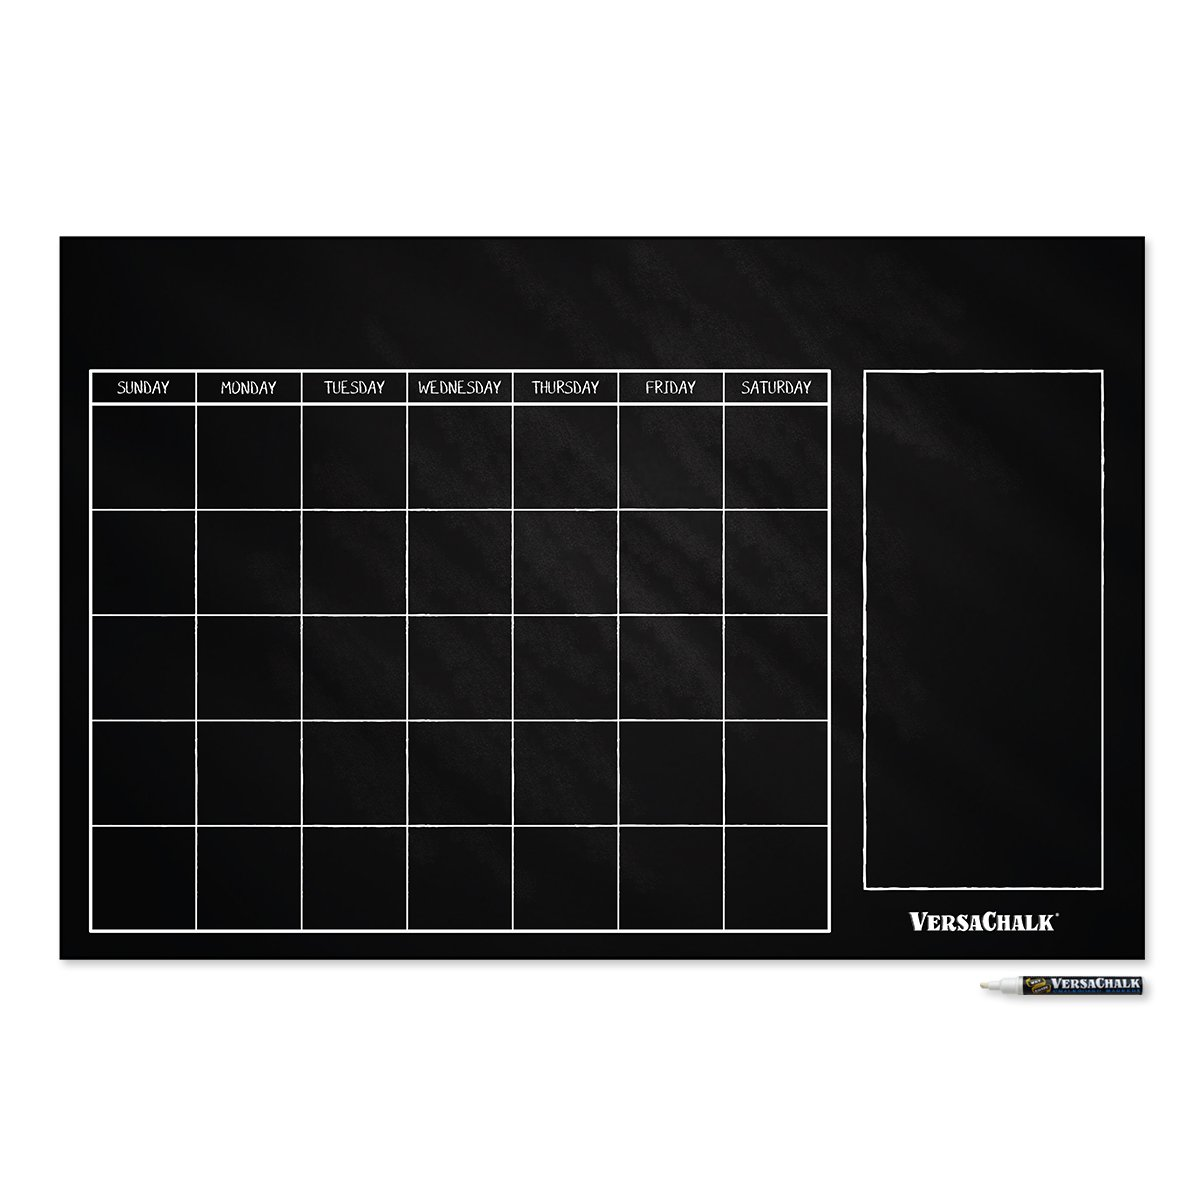 Large Erasable Chalkboard Calendar Wall Decal Sticker - 24x 36 by VersaChalk